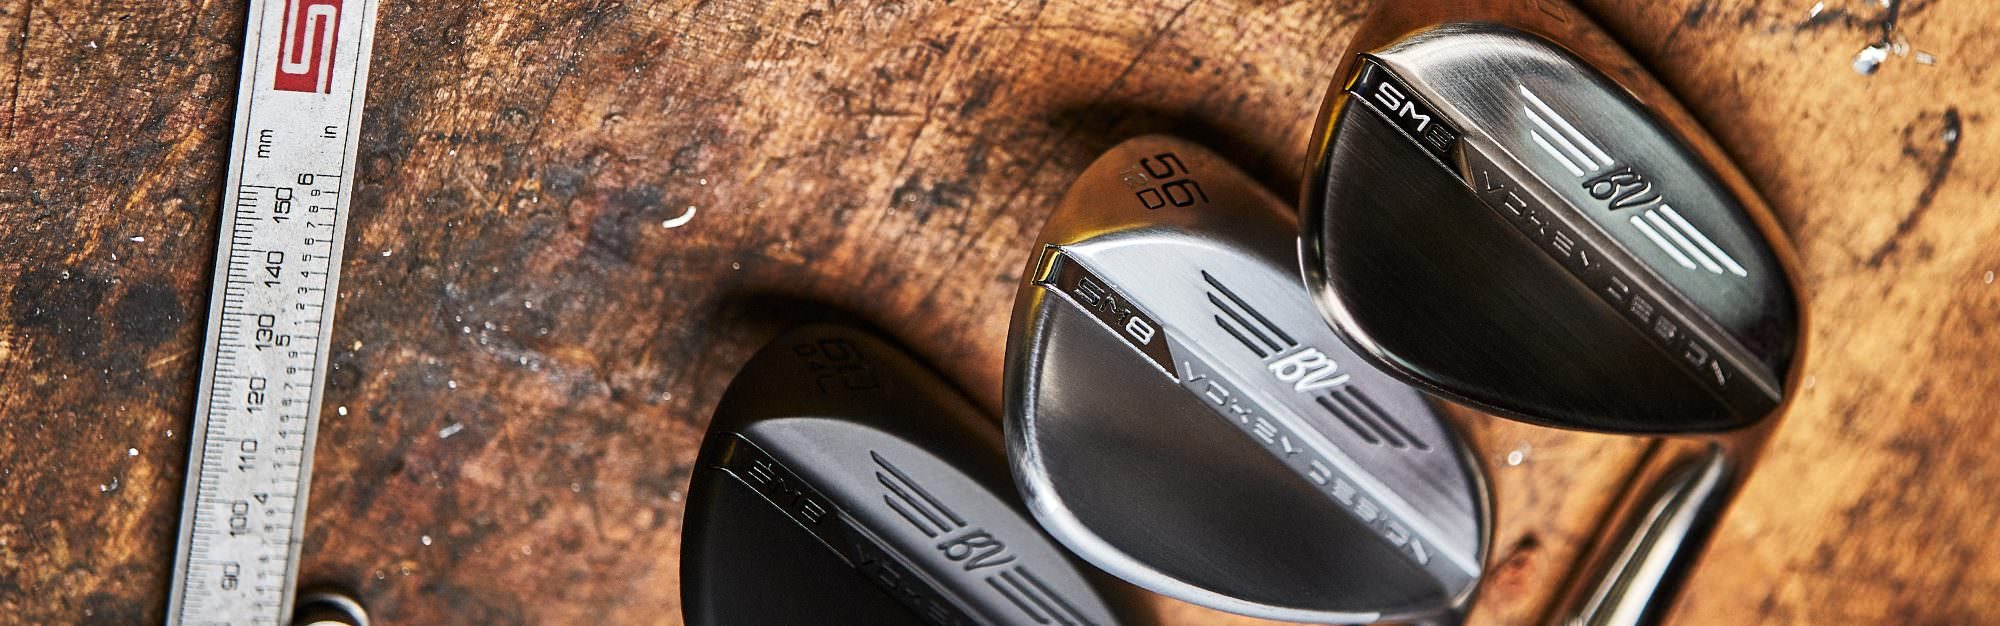 Better 8 than never: Say hello to the latest Vokey wedges